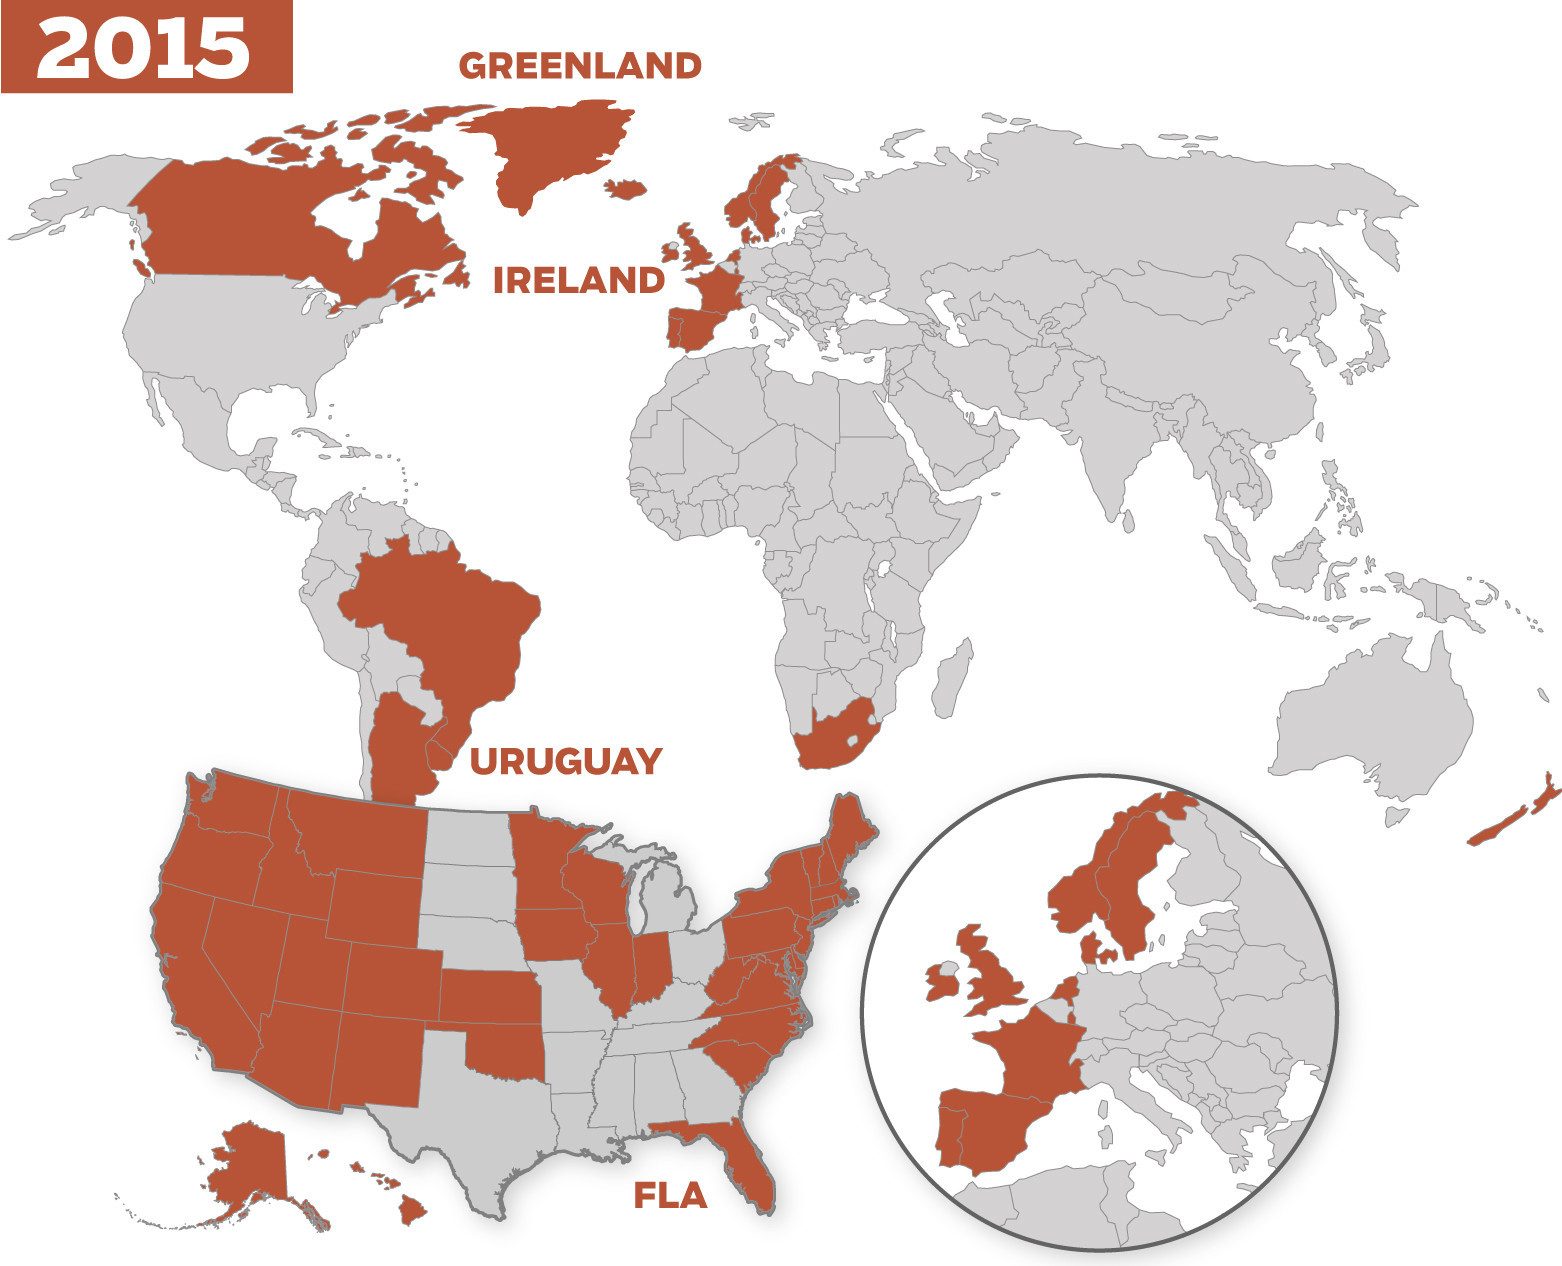 Gay Marriage Map World And US Chicago Tribune - Us gay marriage map